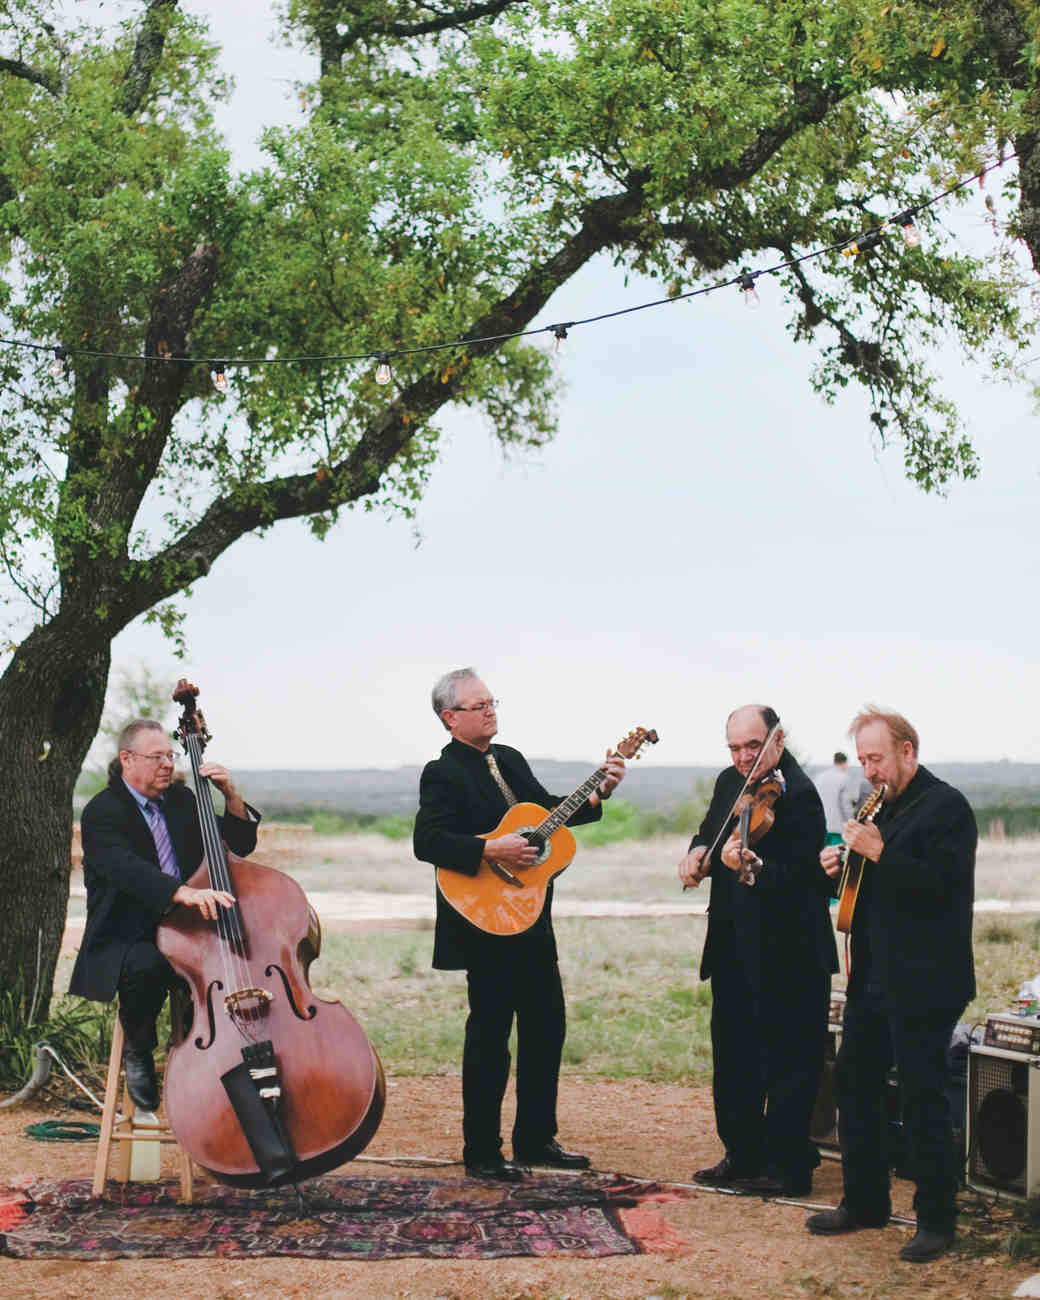 wedding-band-outdoor-musicians-winn-bowman-thenichols-378-mwds110732.jpg